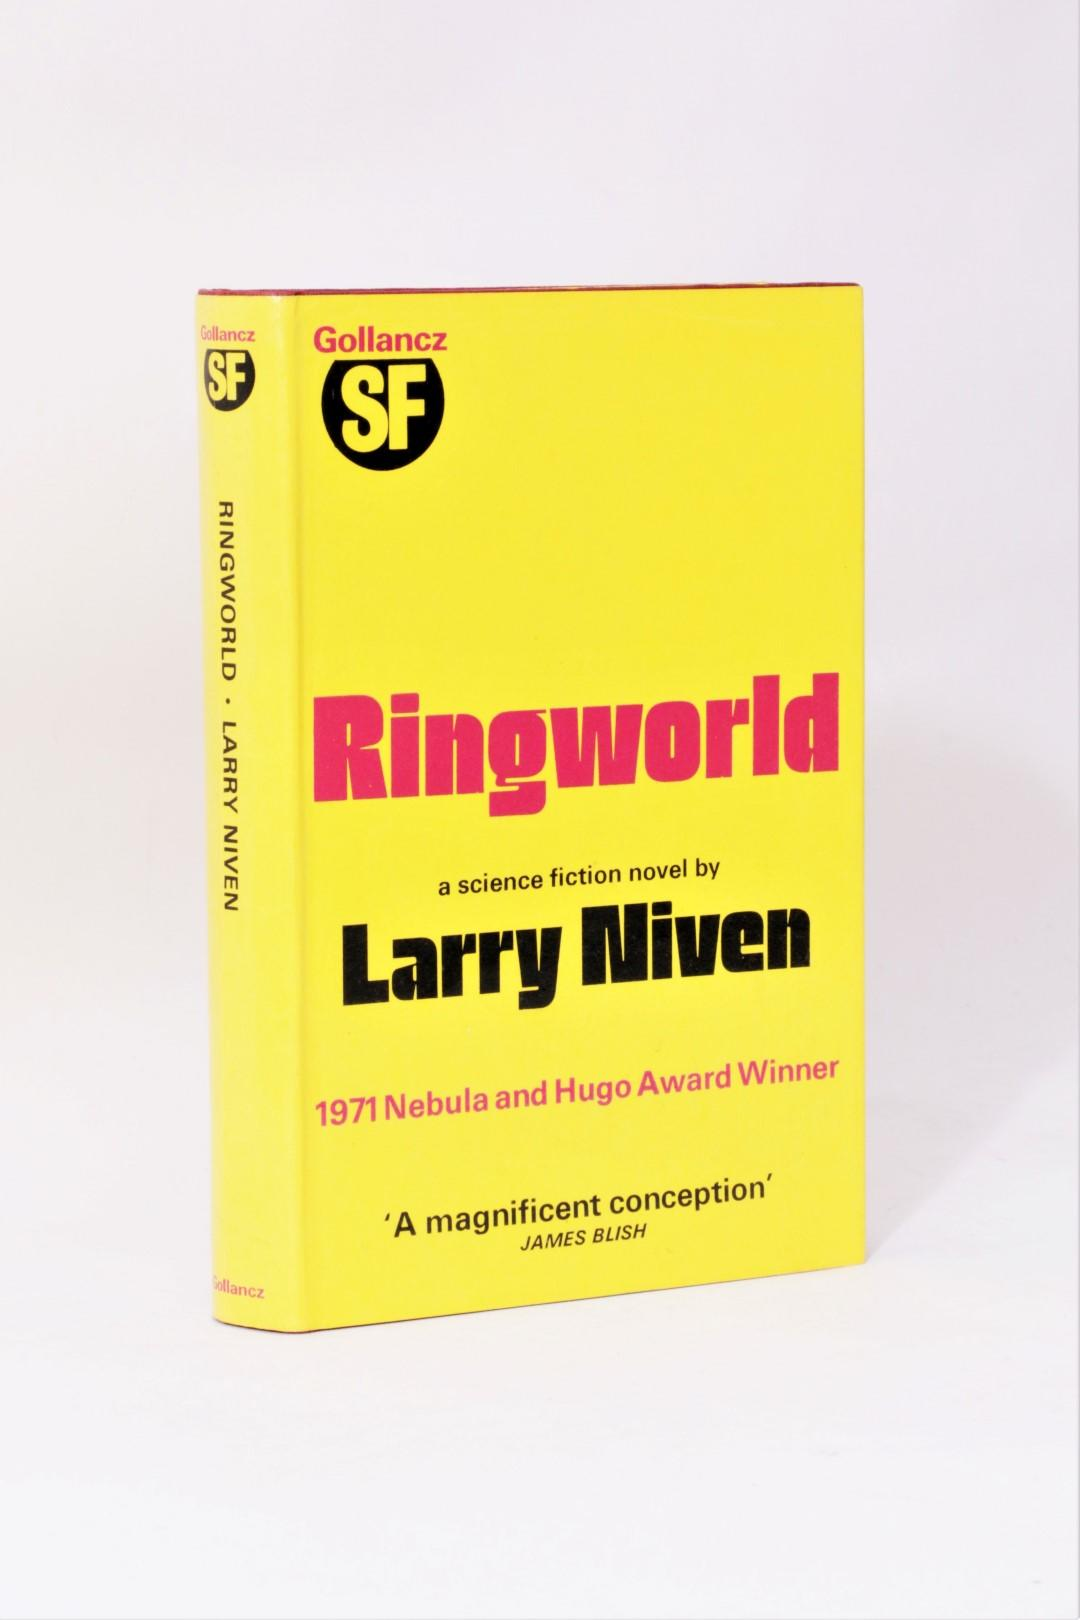 Larry Niven - Ringworld - Gollancz, 1972, First Edition.